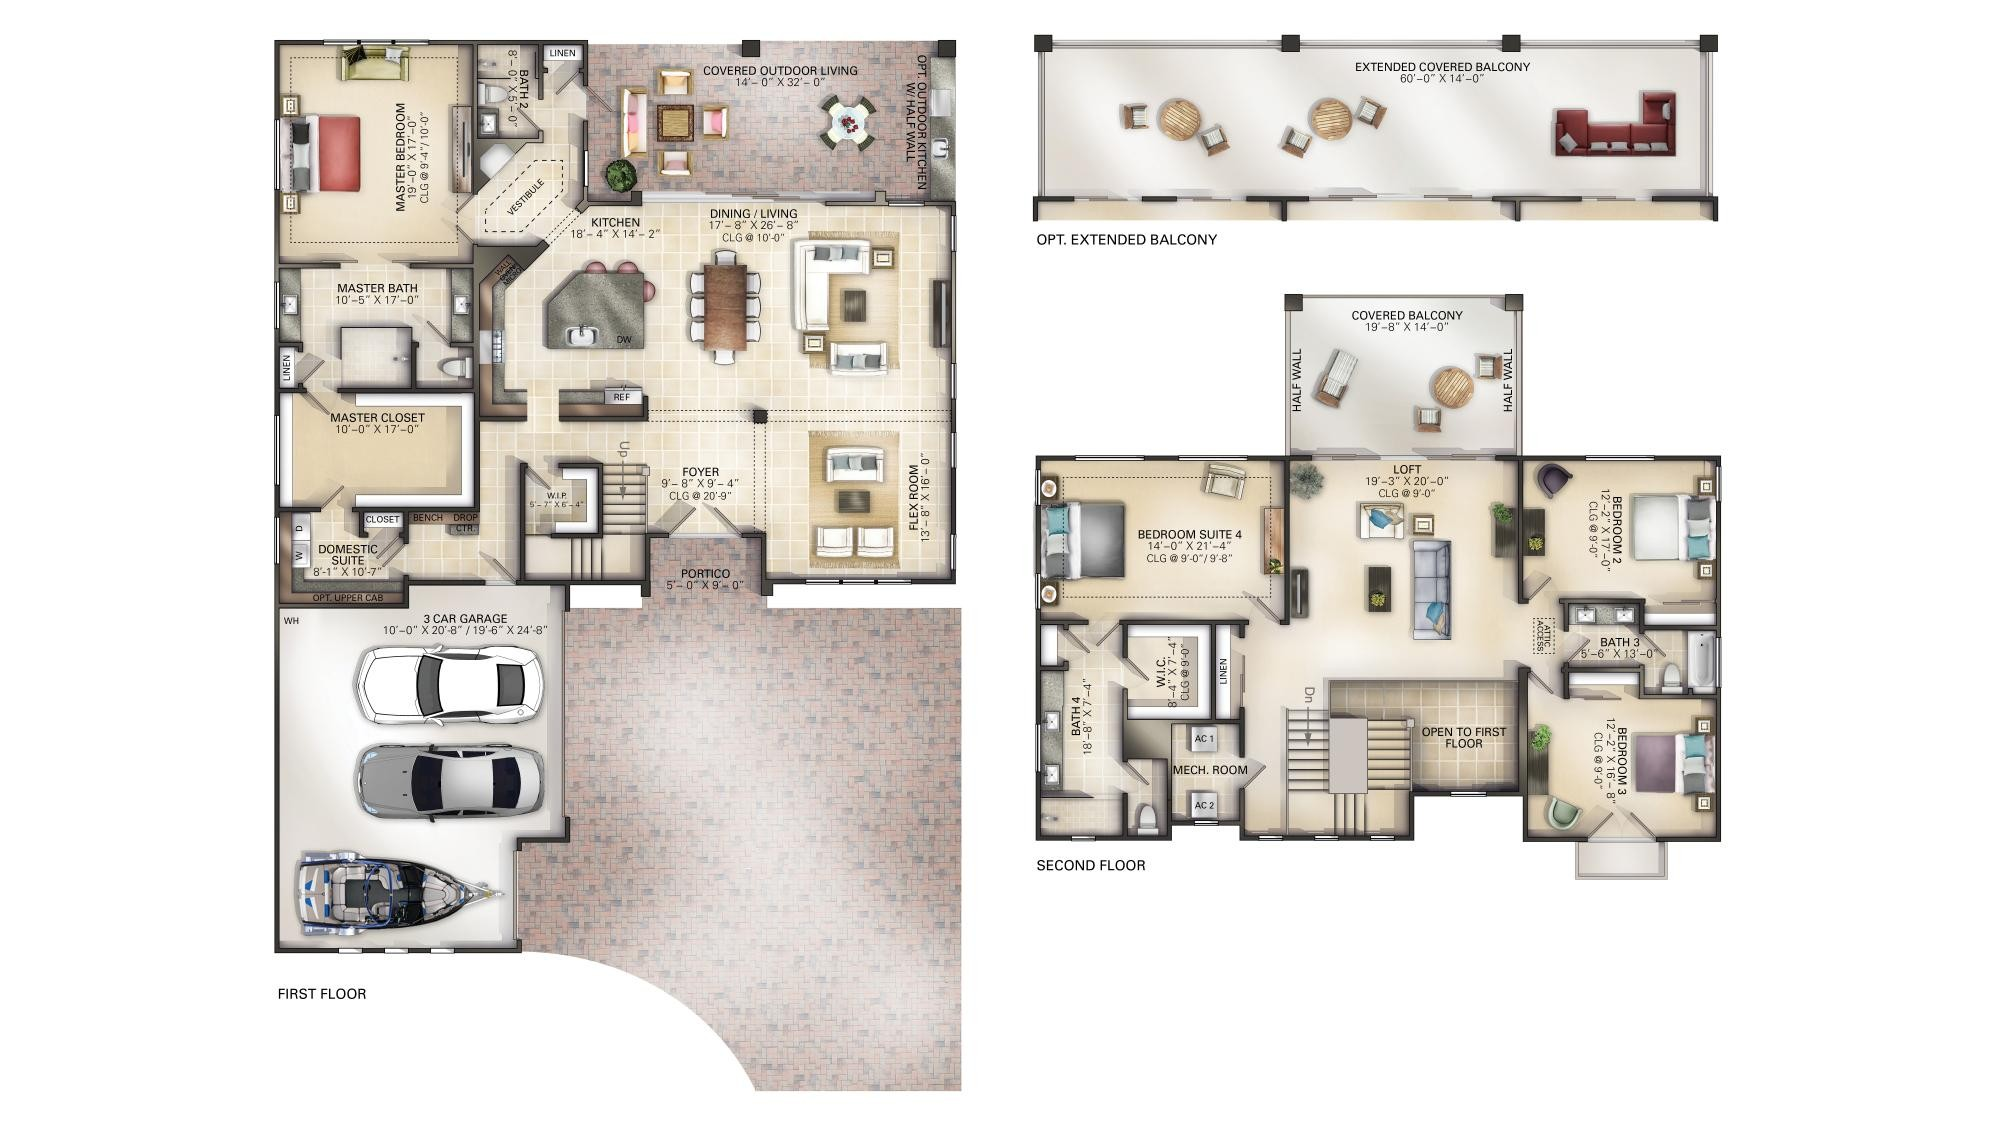 695763202849775_17118_sawgrass_floorplan_se20171006161155